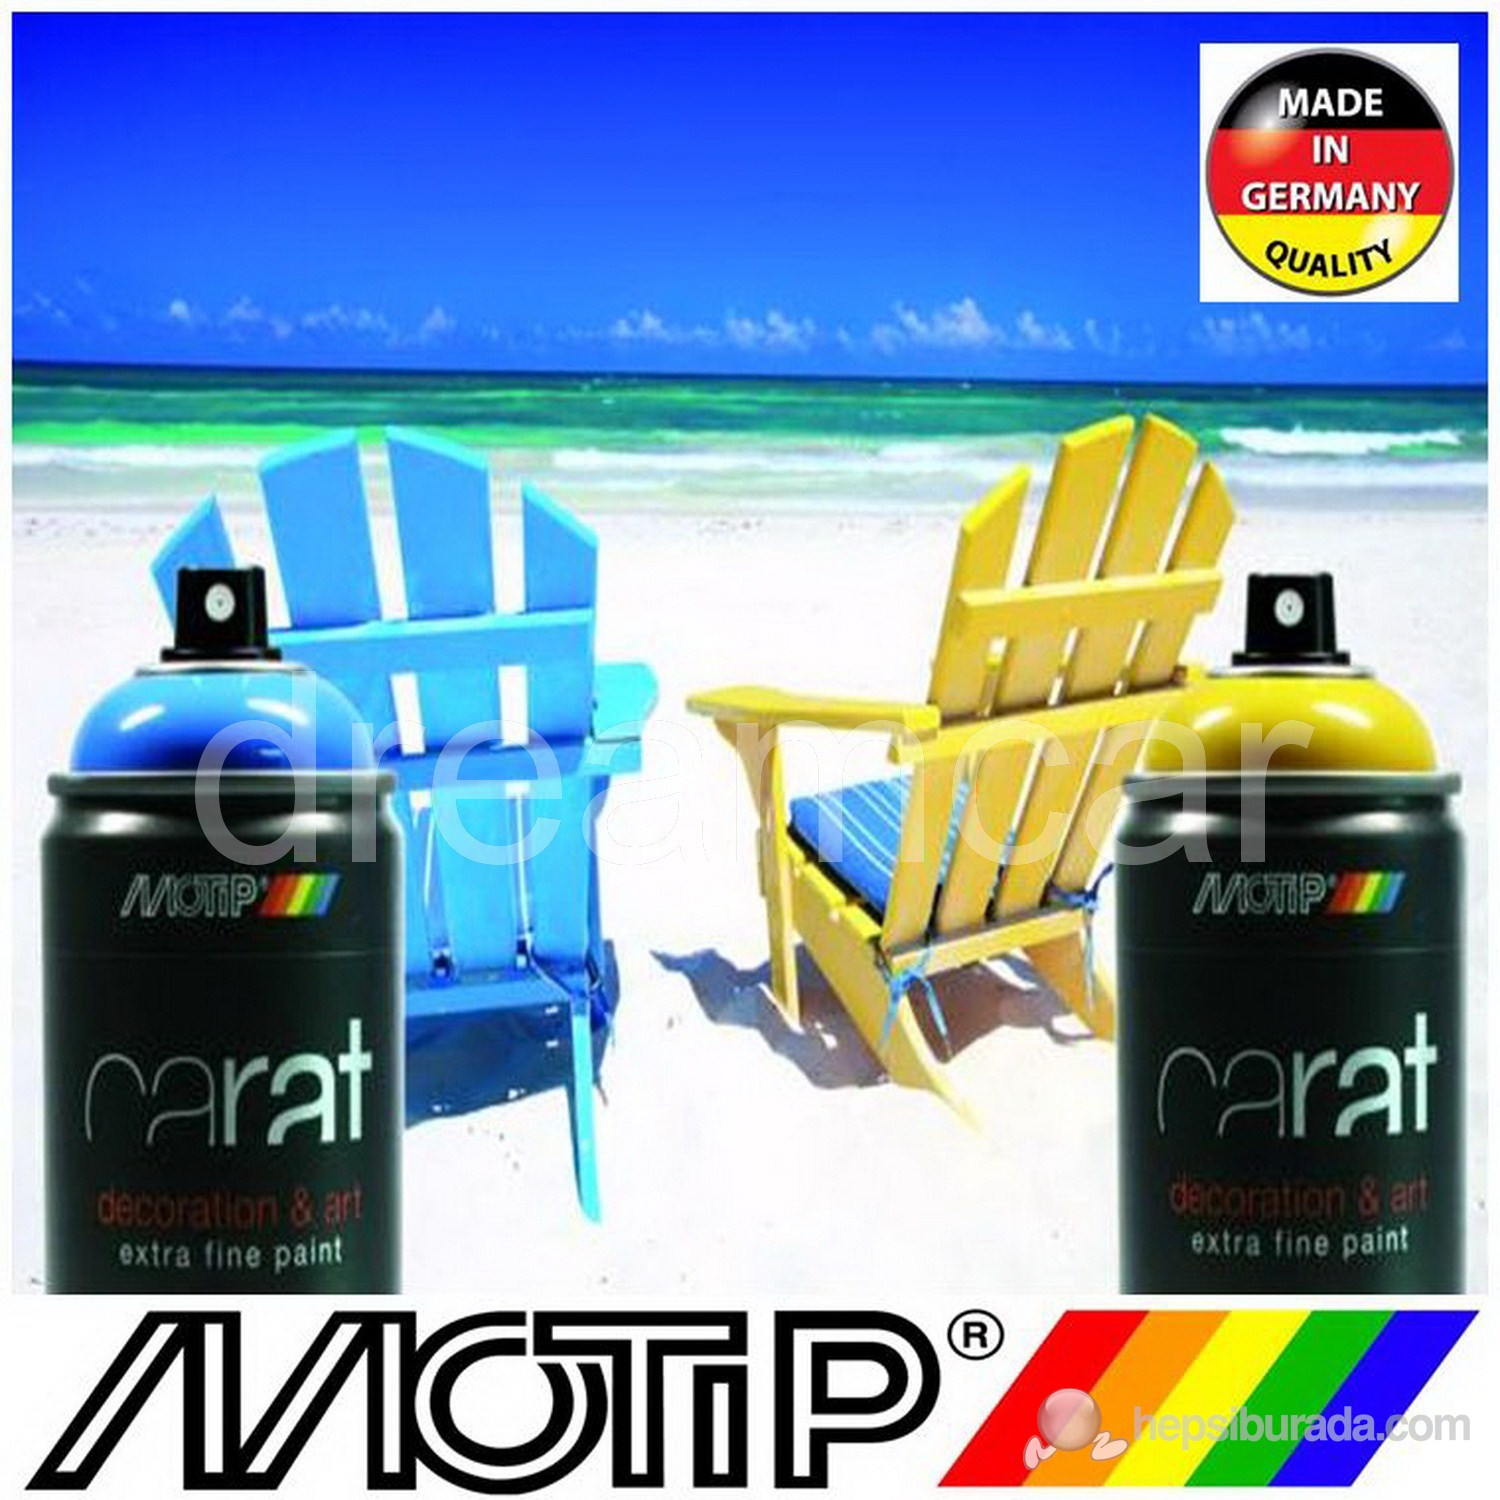 Motip Carat Ral 9005 Mat Siyah Akrilik Sprey Boya 400 Ml. Made in Germany 365317